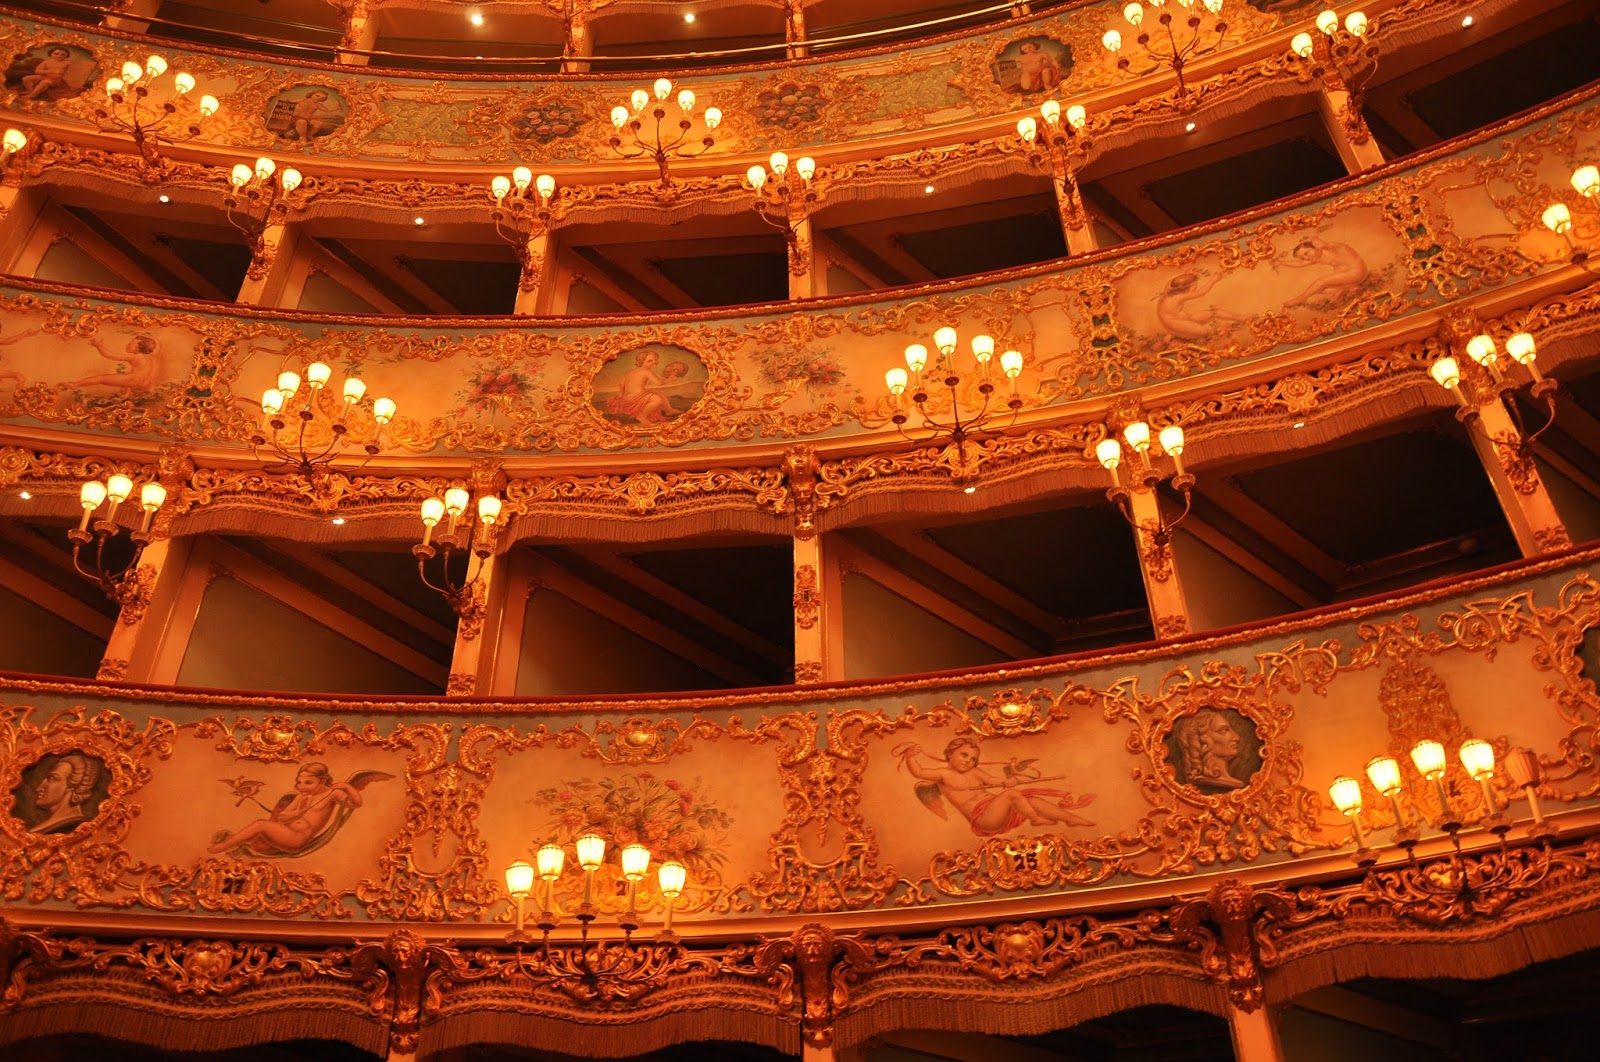 A close-up of the boxes, La Fenice, Venice, Italy